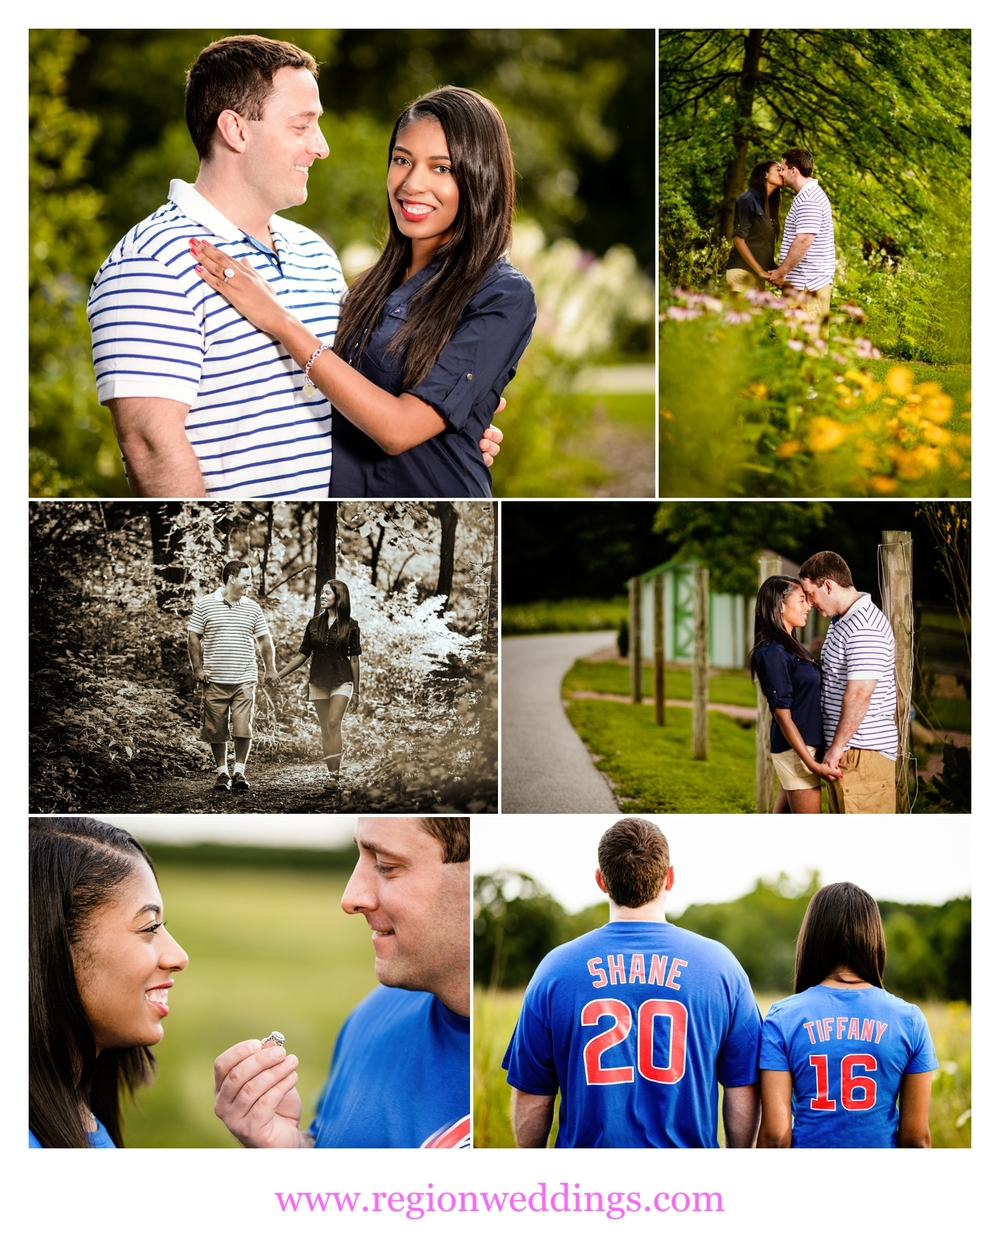 Cute engagement photos at Taltree Arboretum in Valparaiso, Indiana.